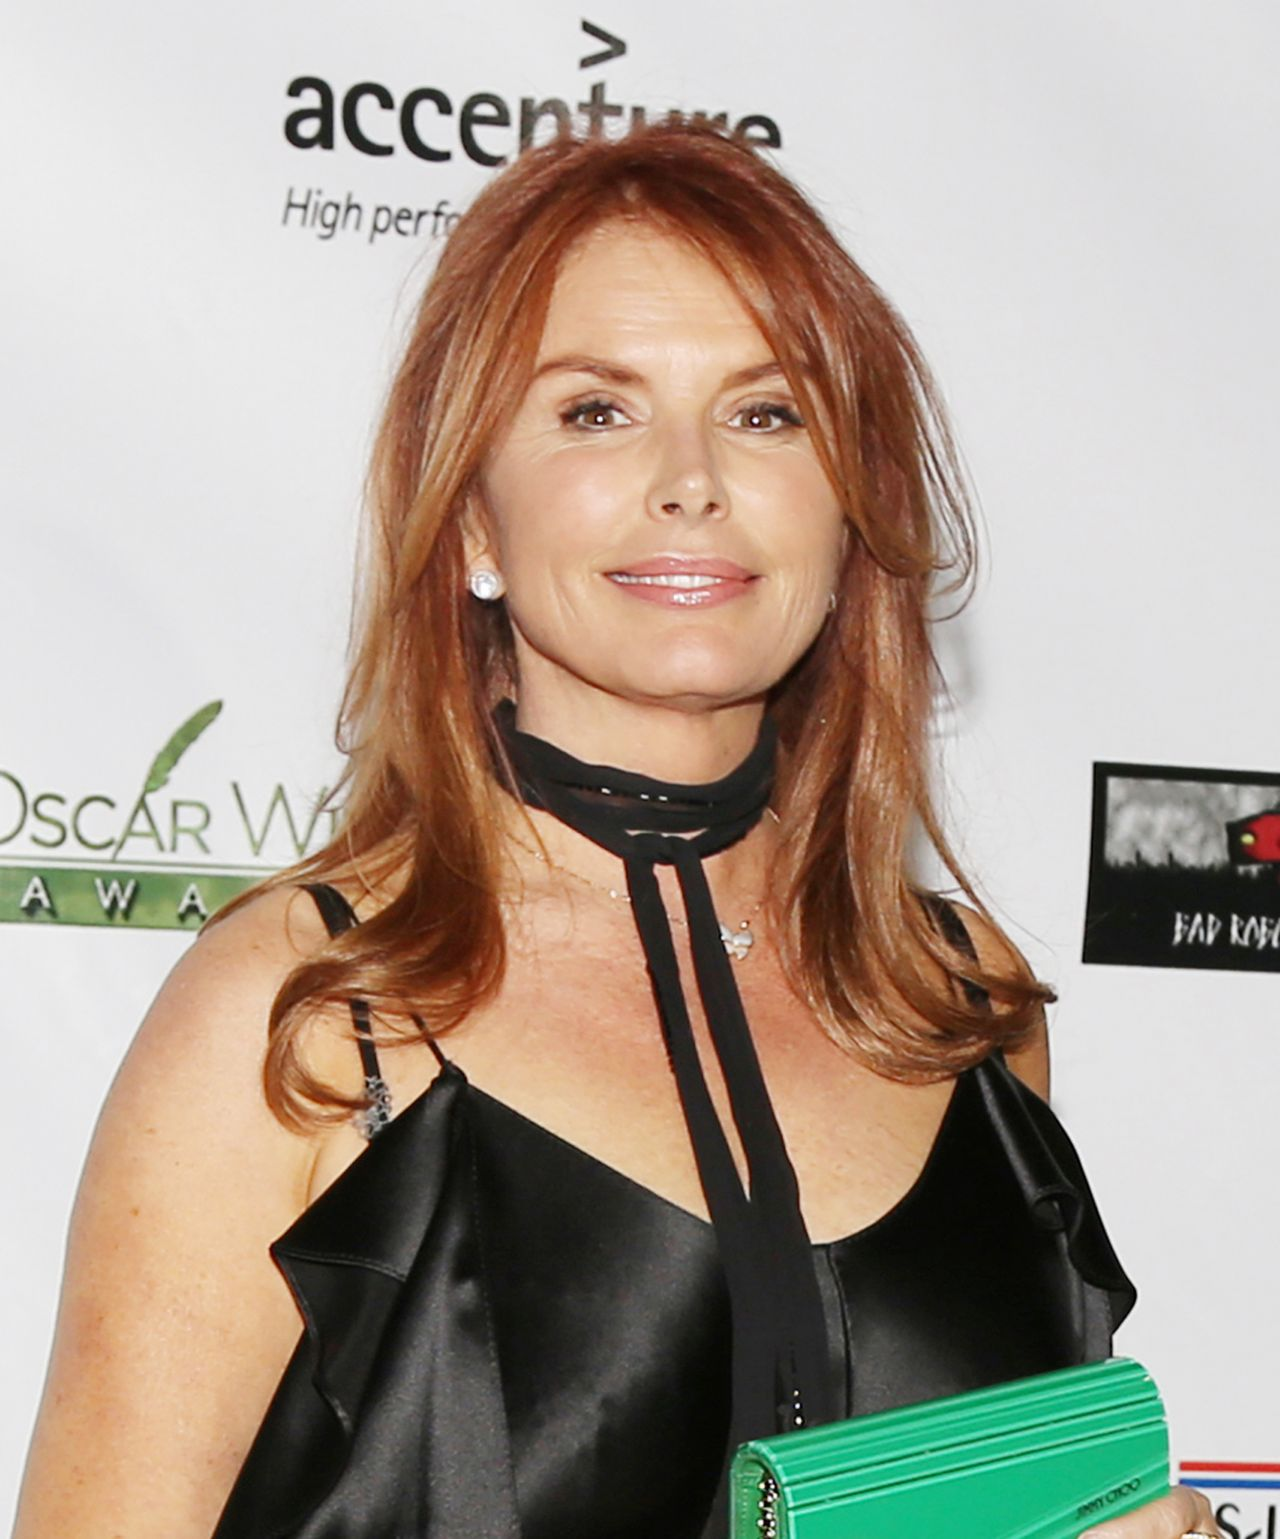 Roma Downey Oscar Wilde Awards Santa Monica 223 2017 702117 furthermore Carta De Un C esino A Oscar Ivan Zuluaga besides Funcionamiento Del Switch Y Del Router further Tina Fey Suffers Nip Slip Accident In Tight Blue D furthermore Muchas Gracias Por Los Saludos. on oscar rodriguez b